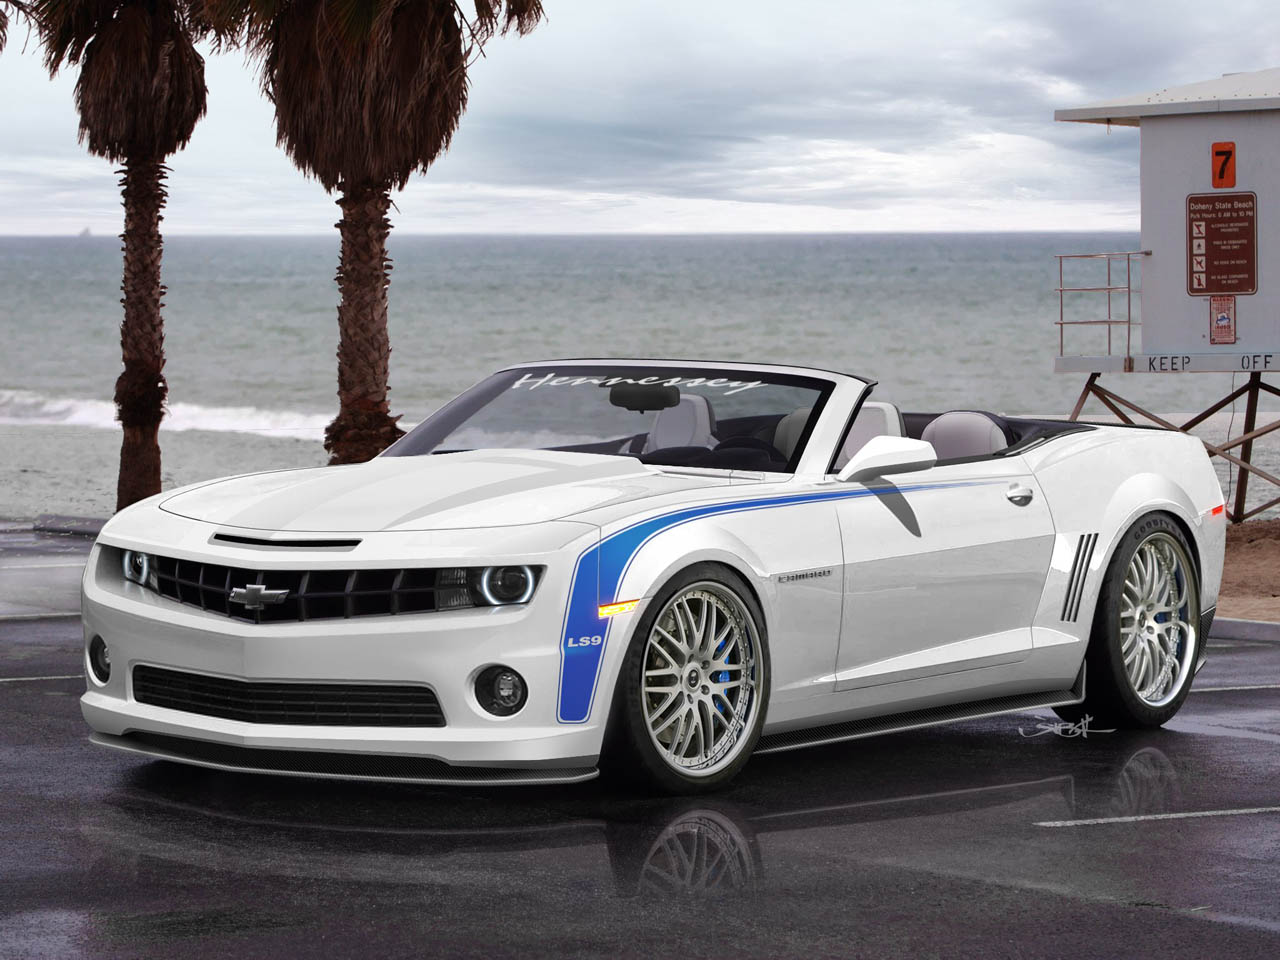 2011 Hennessey HPE700 Camaro Convertible – Click above for high-res